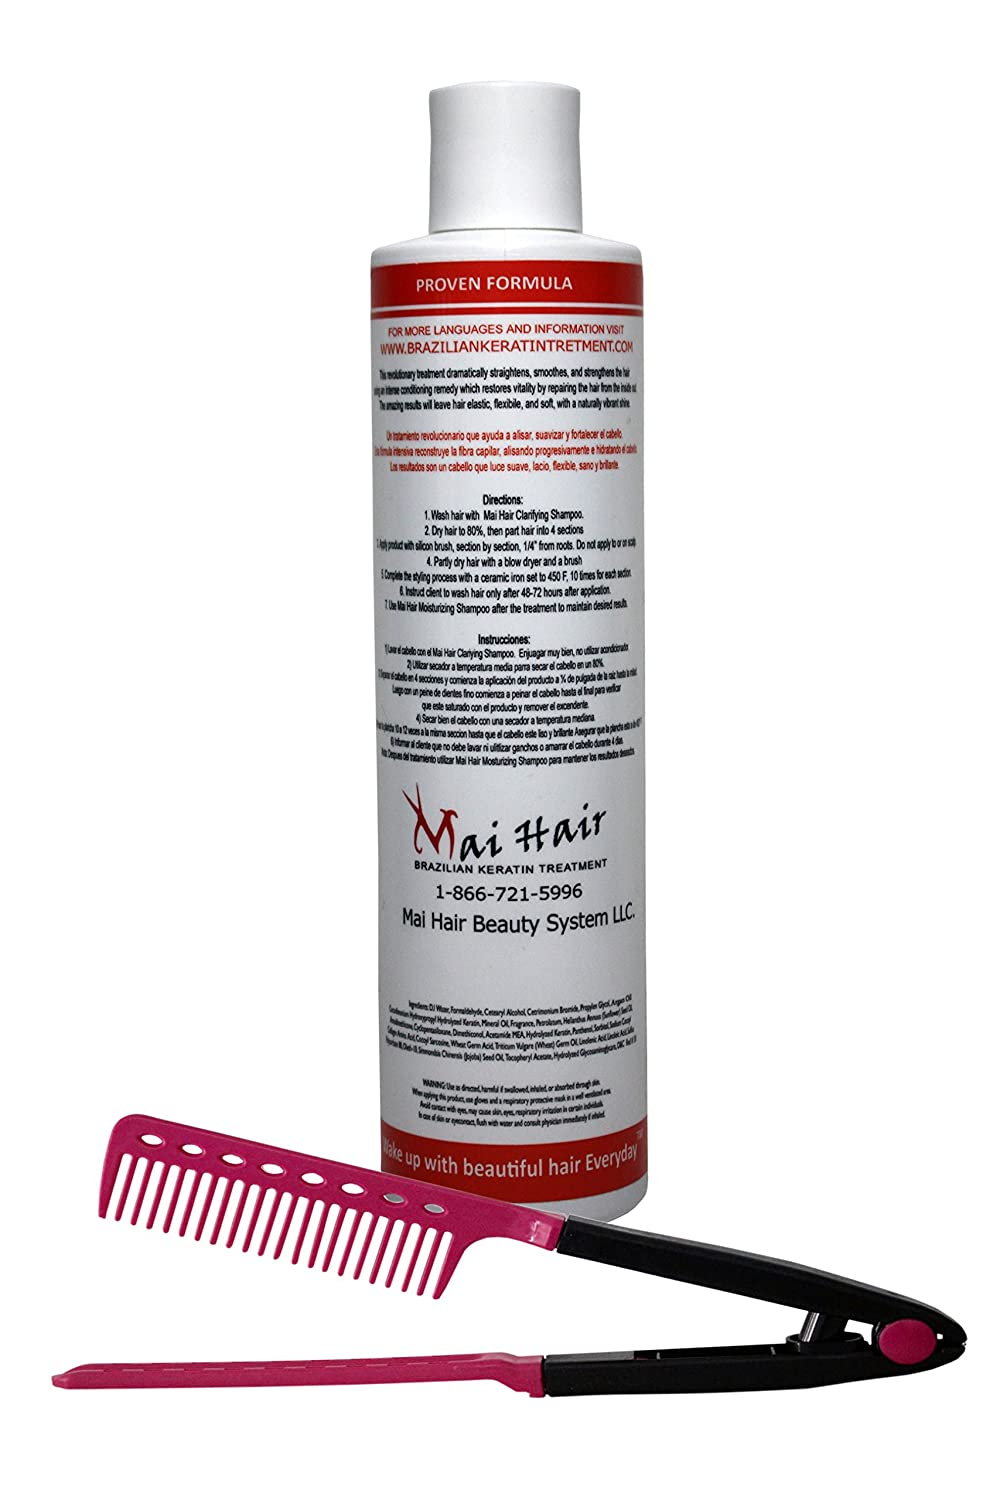 Amazon.com : Professional Brazilian Keratin Hair Treatment For Instant results with Pomegranate and Argan Oil, Improved Formula/Professional Complex Blowout ...